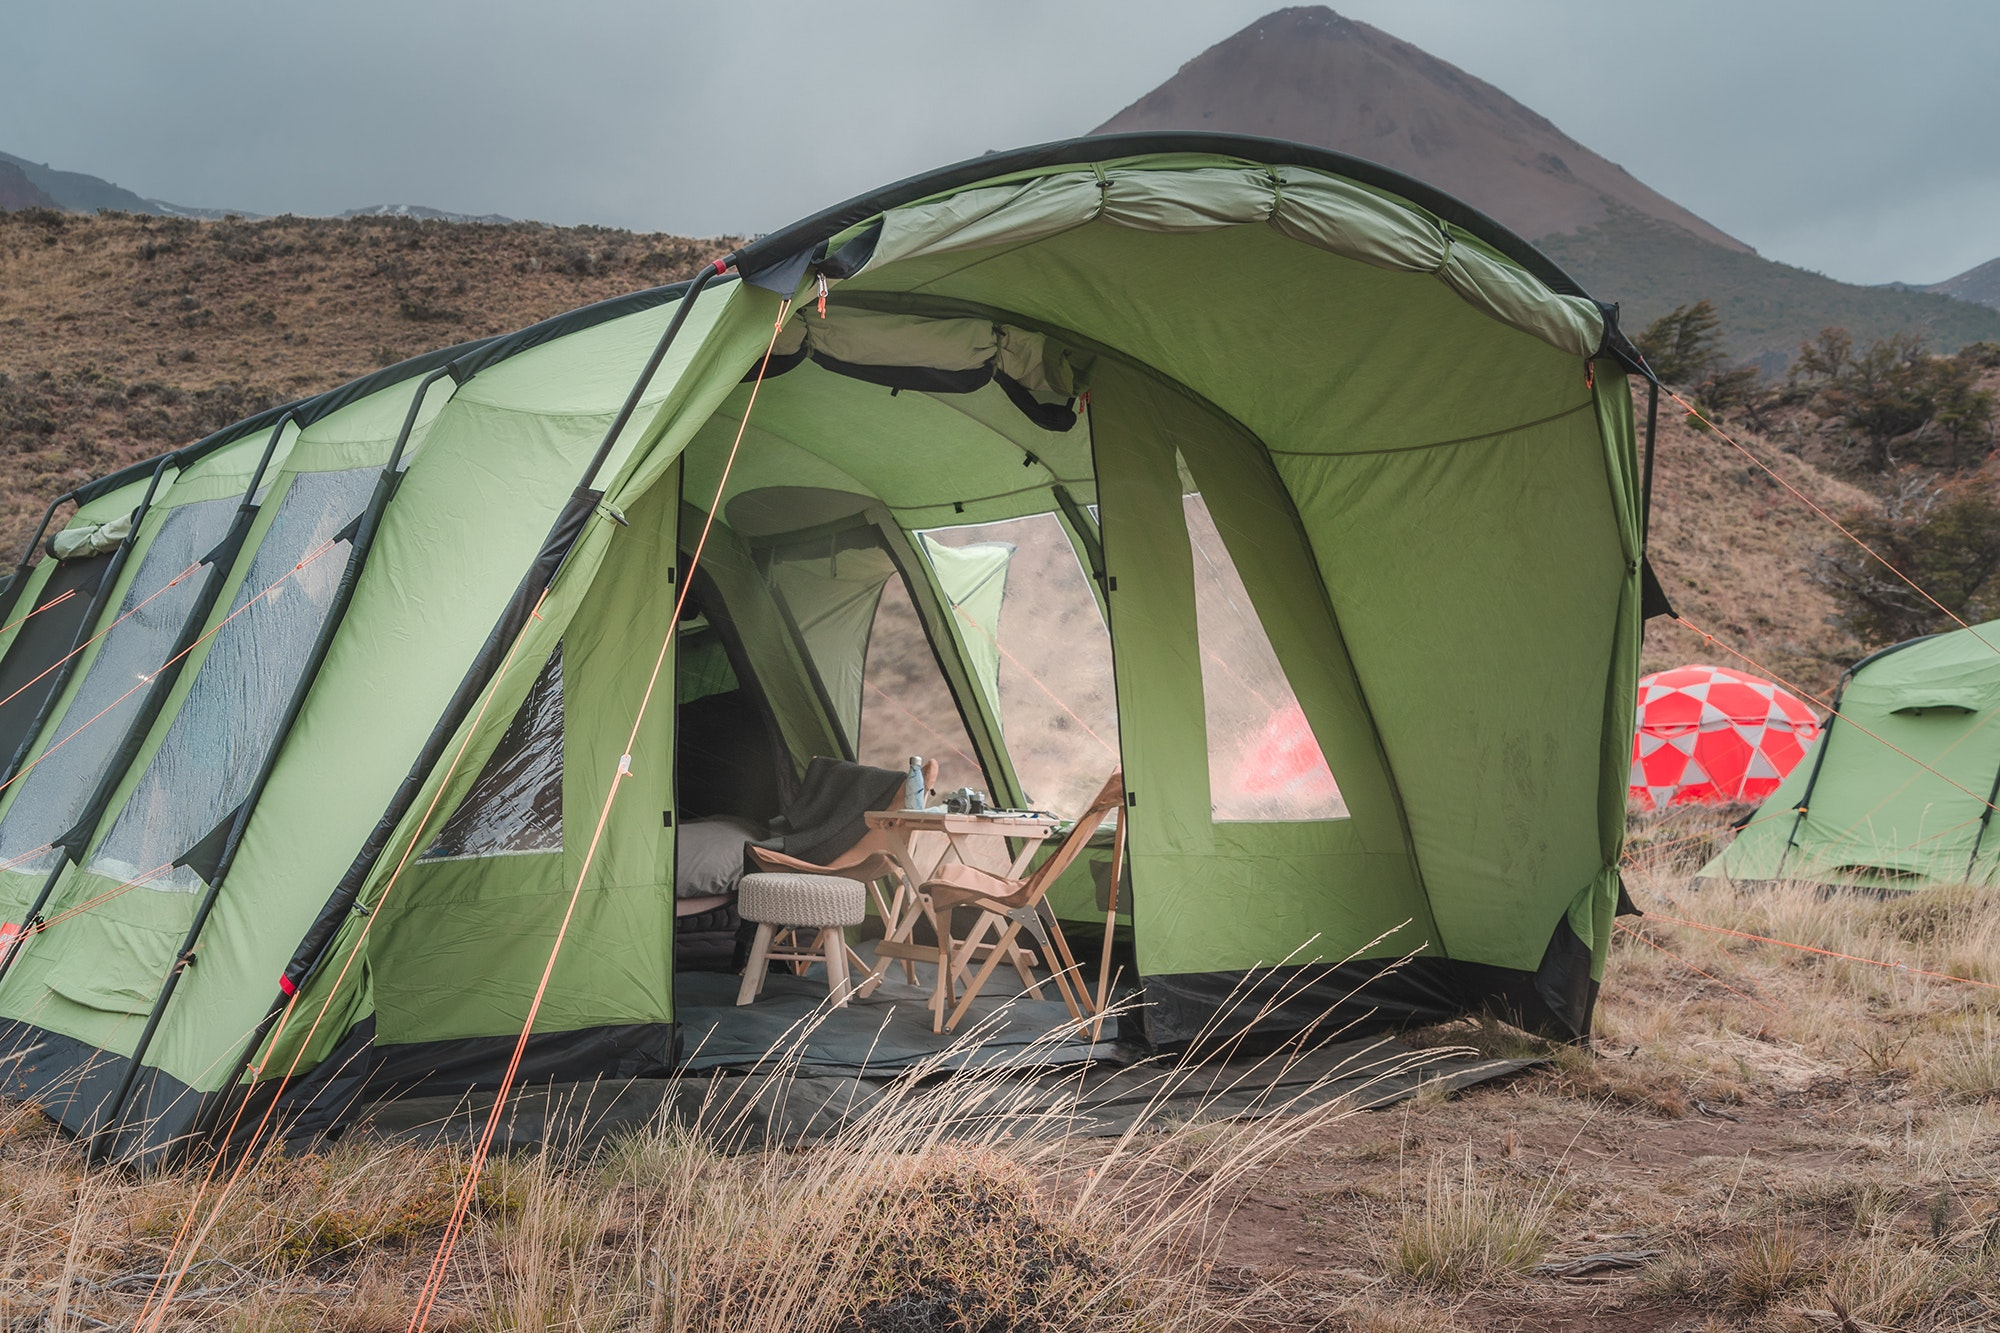 The tents at the Outpost Elqui event are fully furnished for a comfortable camping experience.